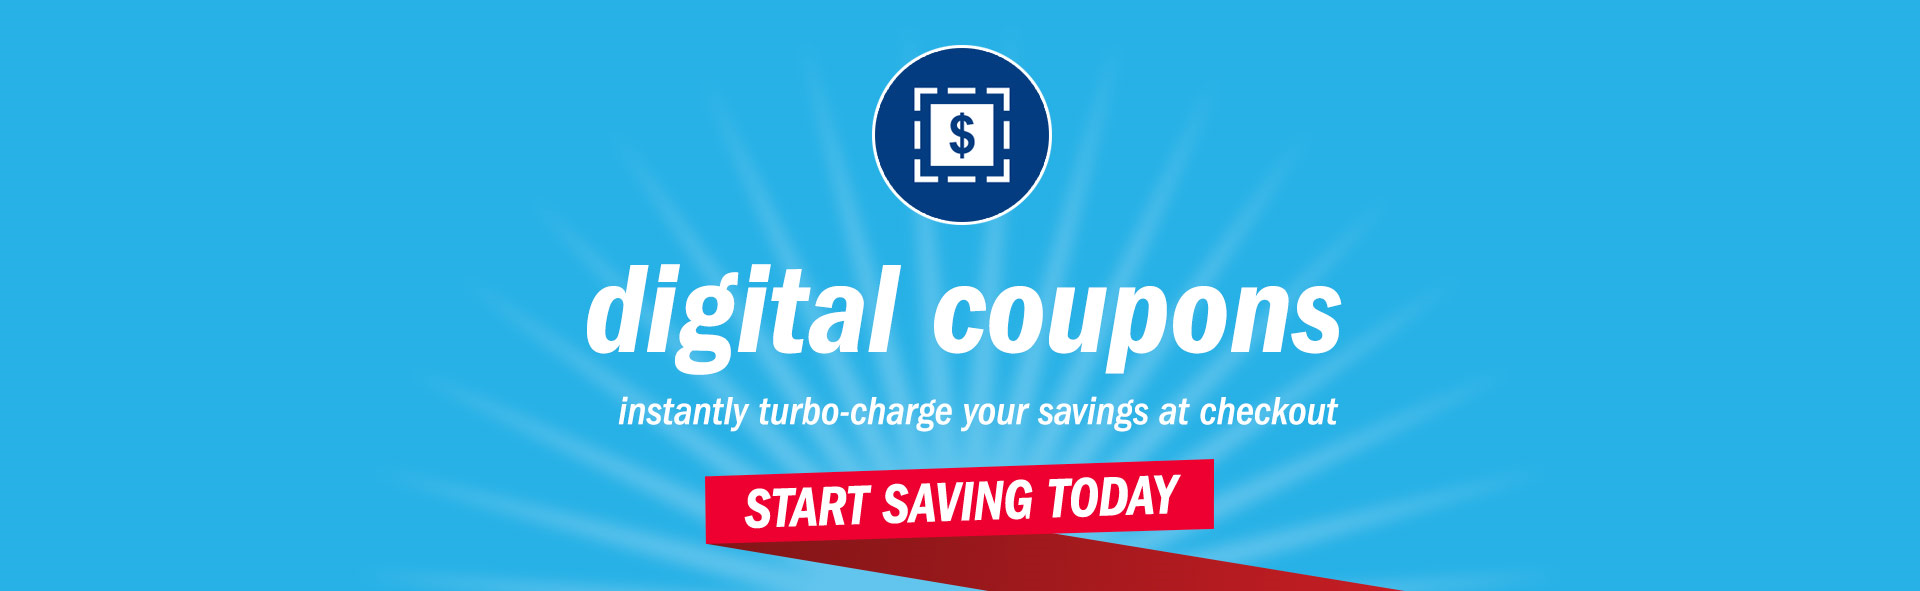 Meijer mperks digital coupons and mperks rewards loyalty program meijer mperks digital coupons instant savings at checkout fandeluxe Choice Image